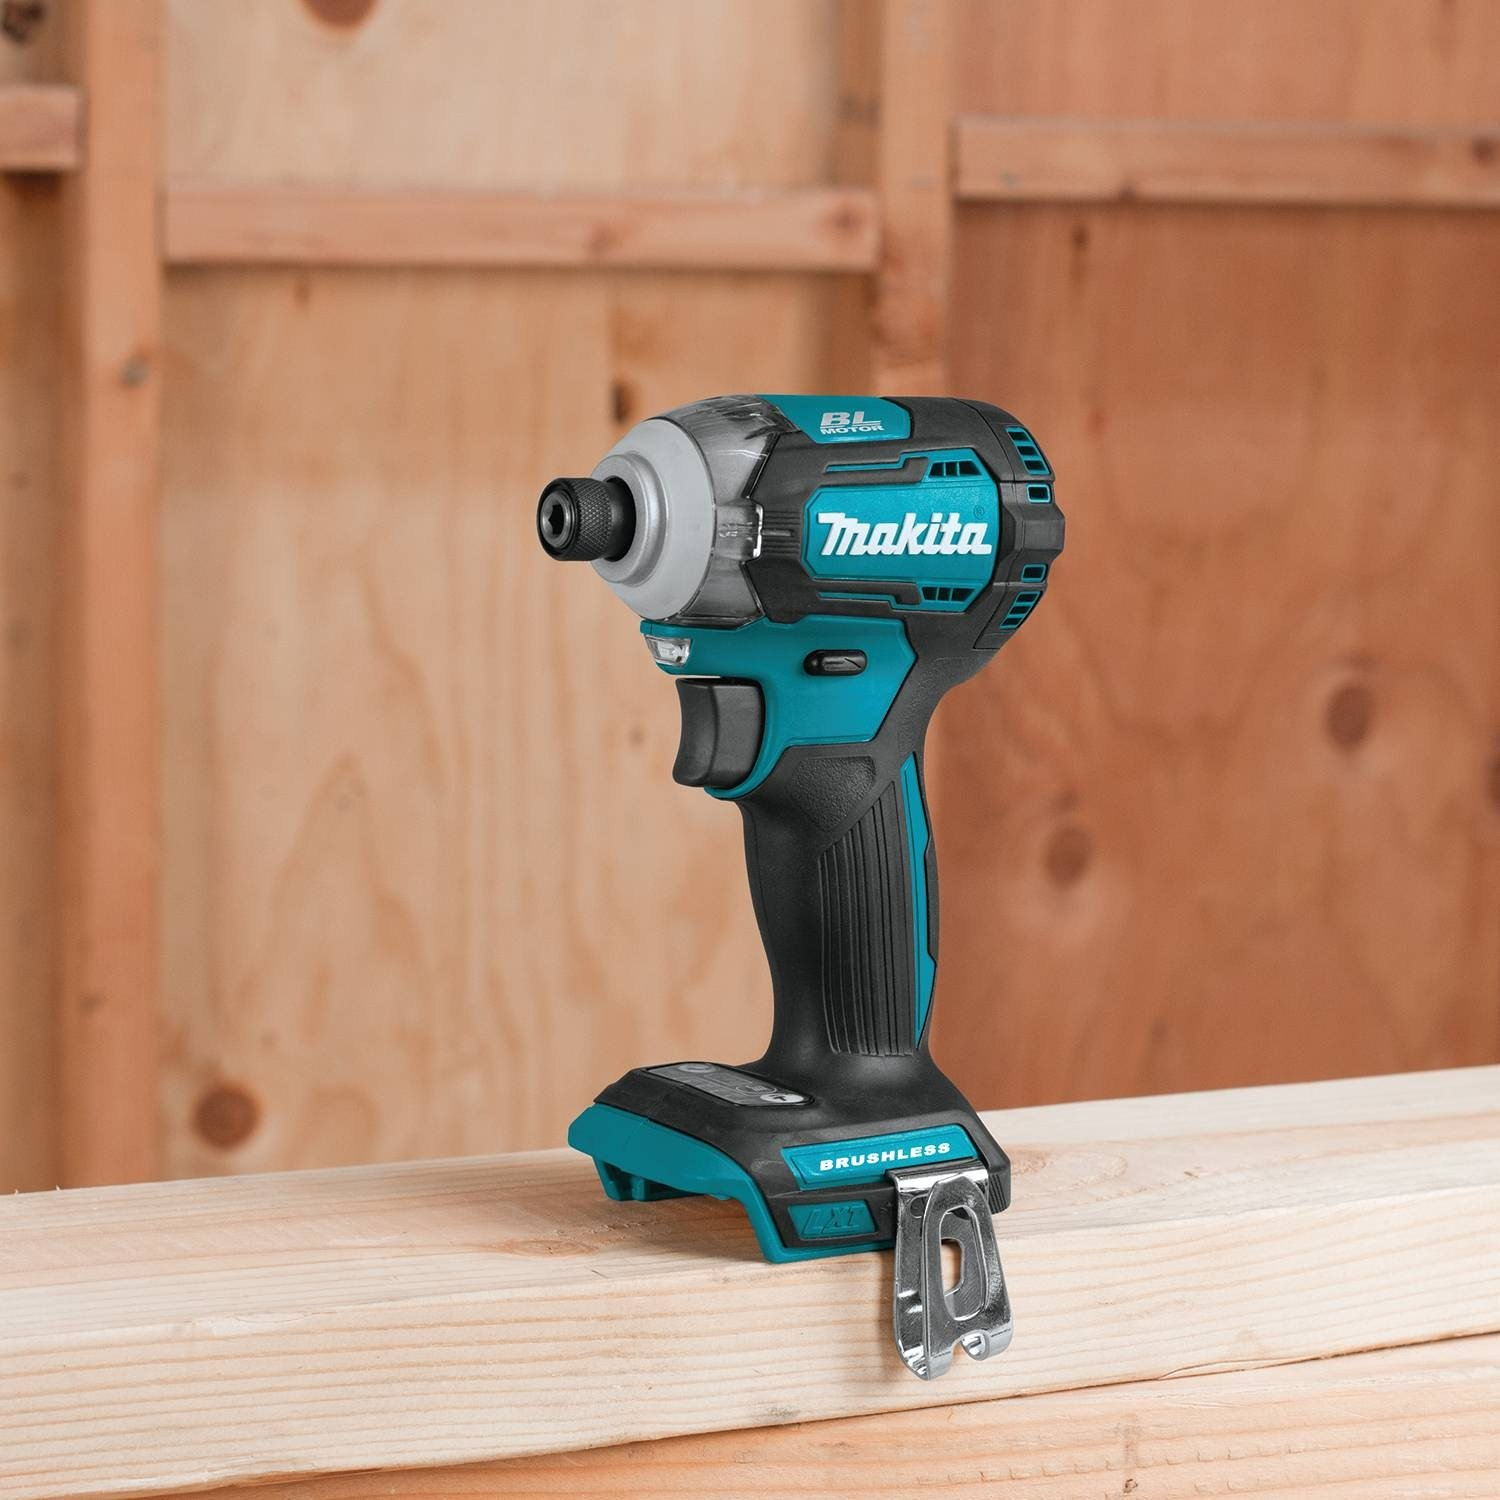 Image of Makita XDT12Z sitting on porche railing